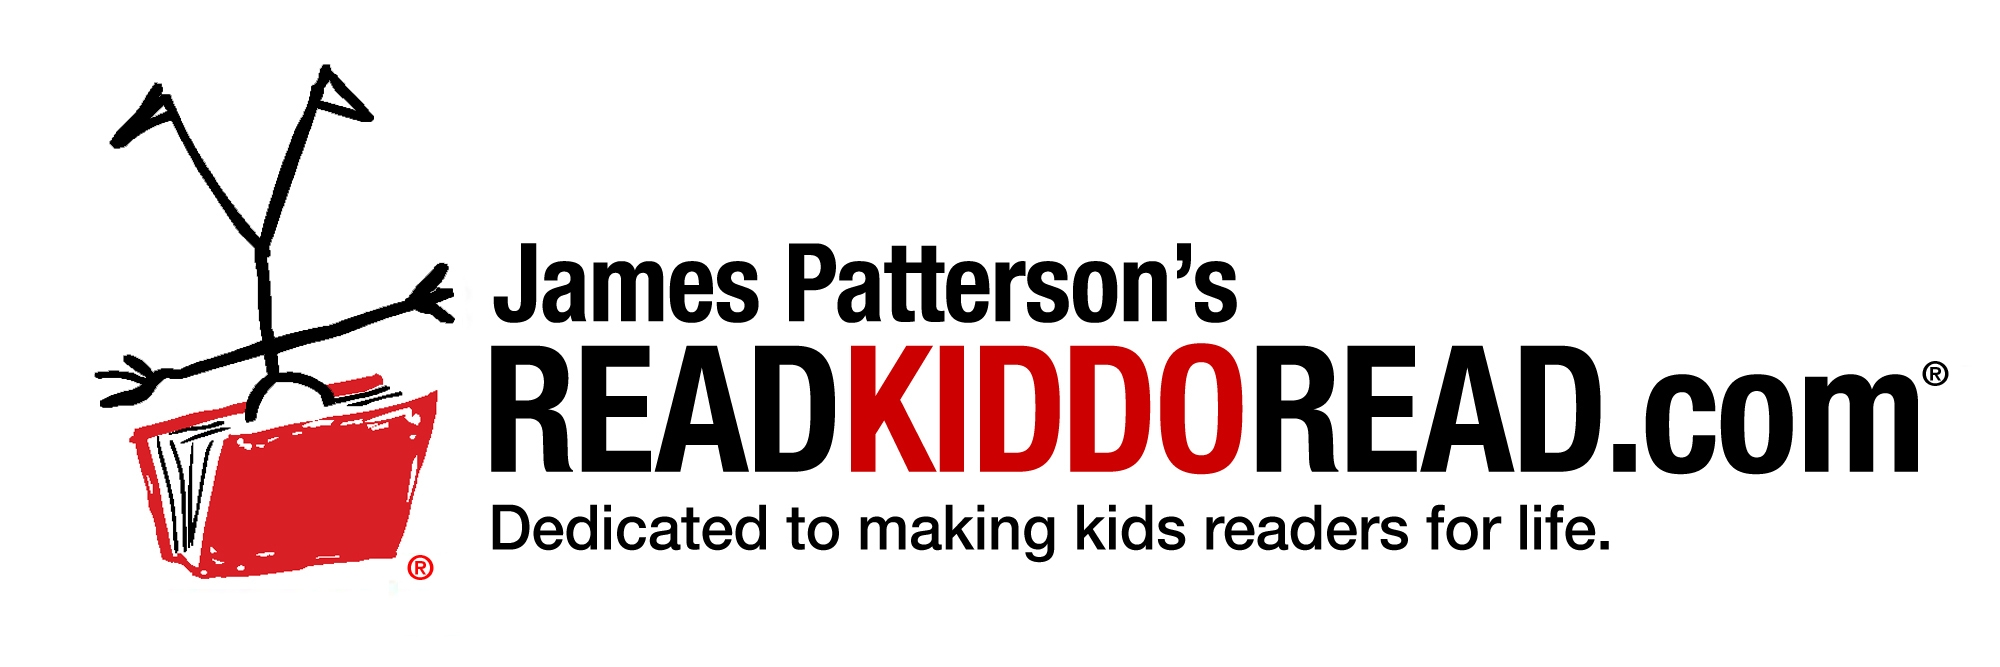 "Read Kiddo Read - An upside-down stick figure has its head in a red book next to the words ""James Patterson's ReadKiddoRead.com: Dedicated to making kids readers for life."